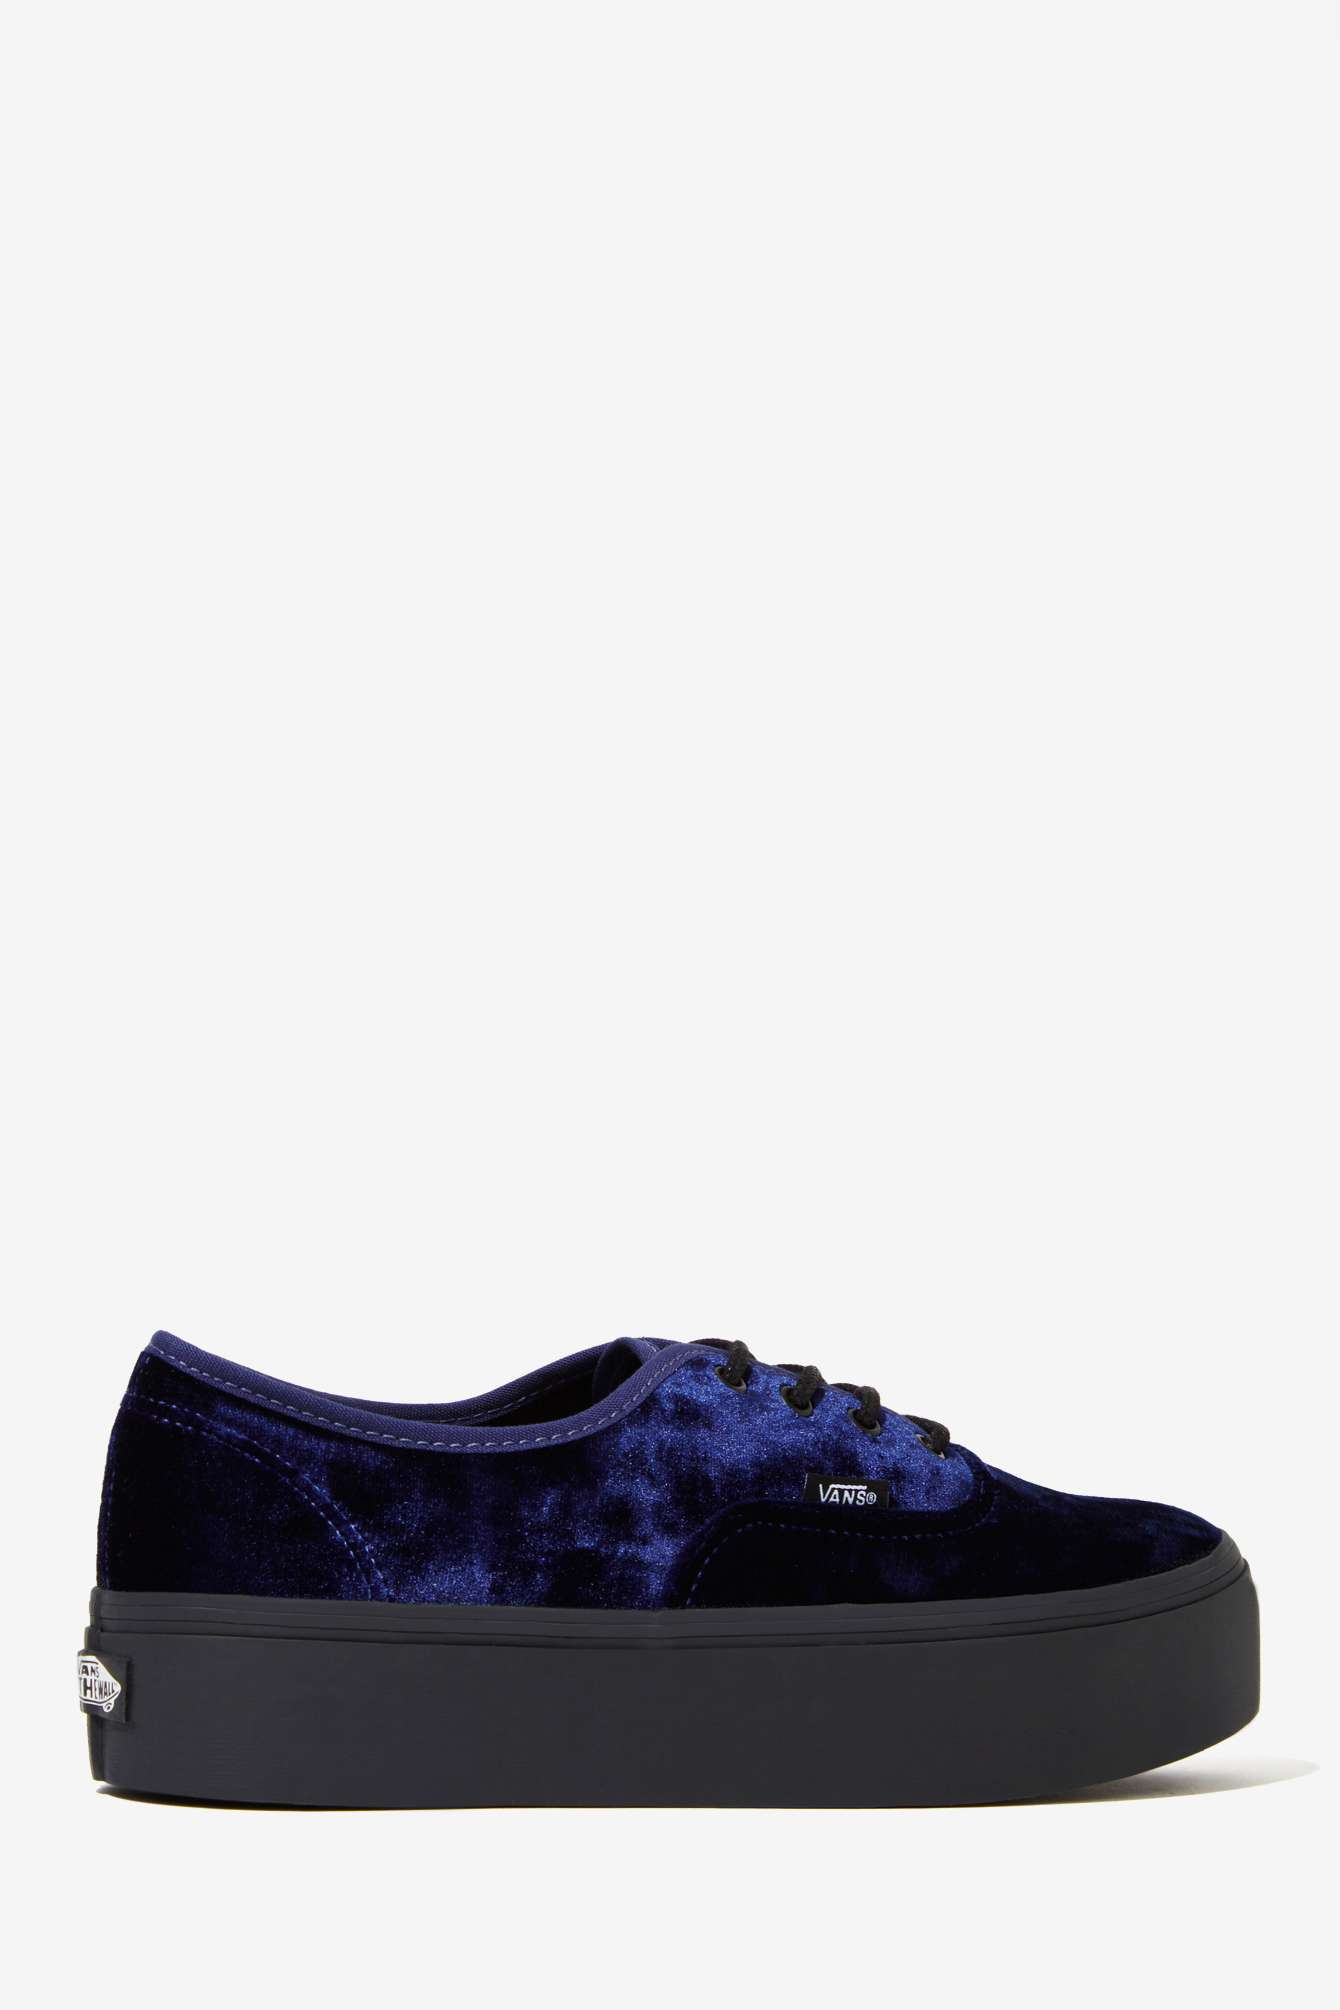 Vans Authentic Platform Shoes